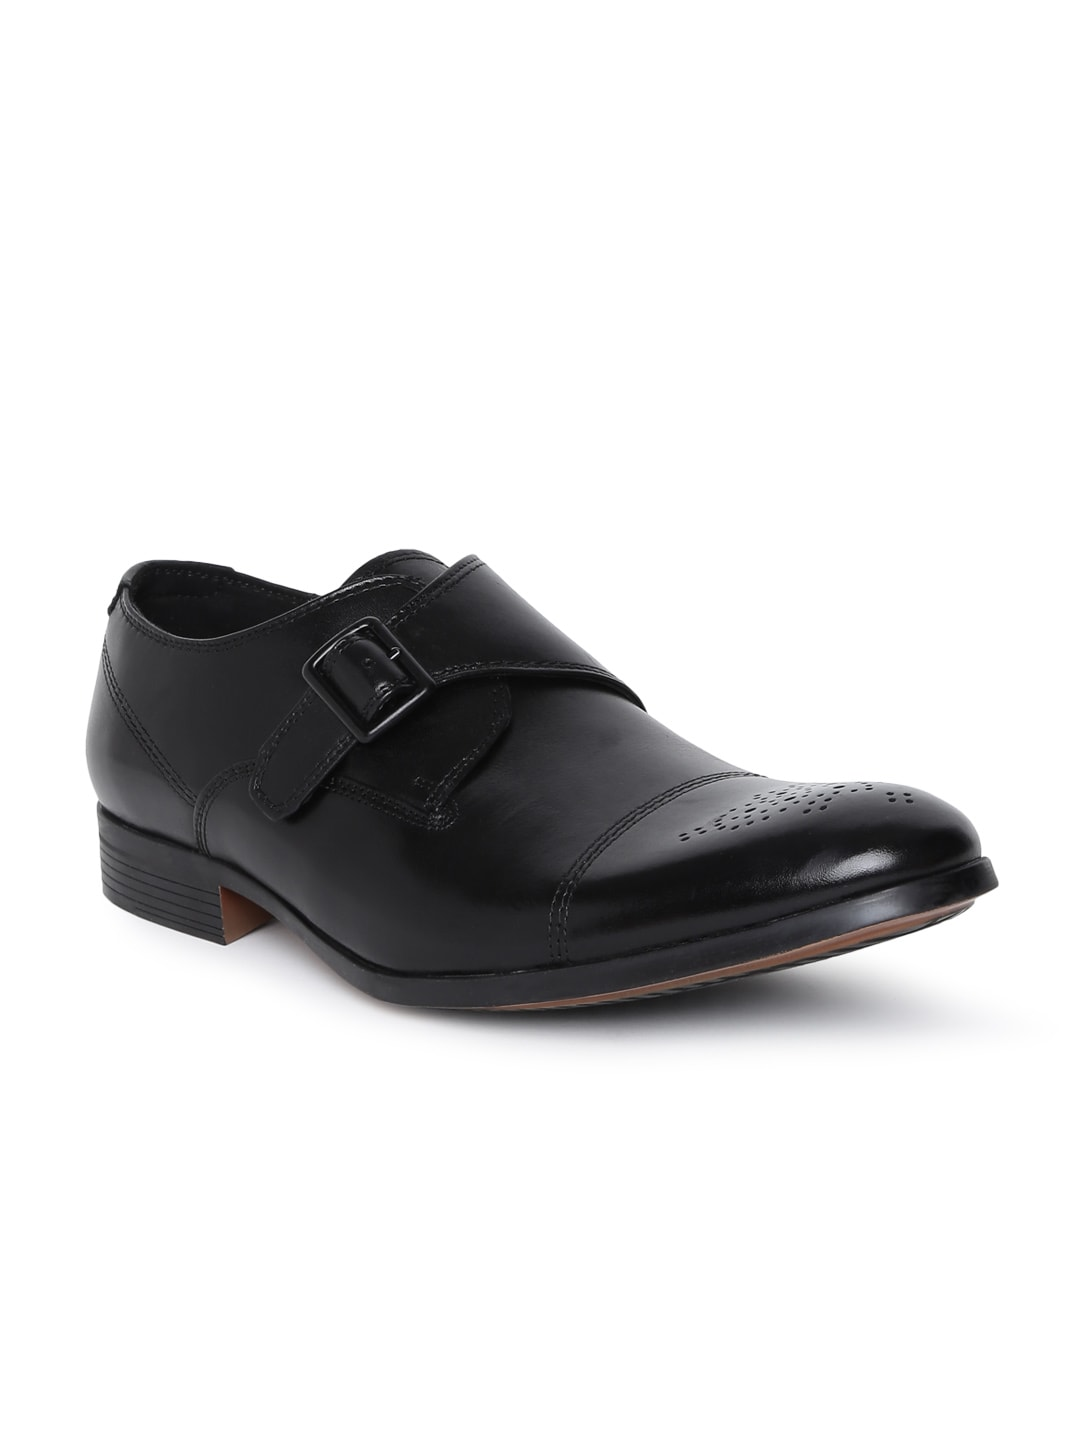 31fb71cb0f8d Clarks Shoes - Buy Clarks Shoes Online in India - Myntra